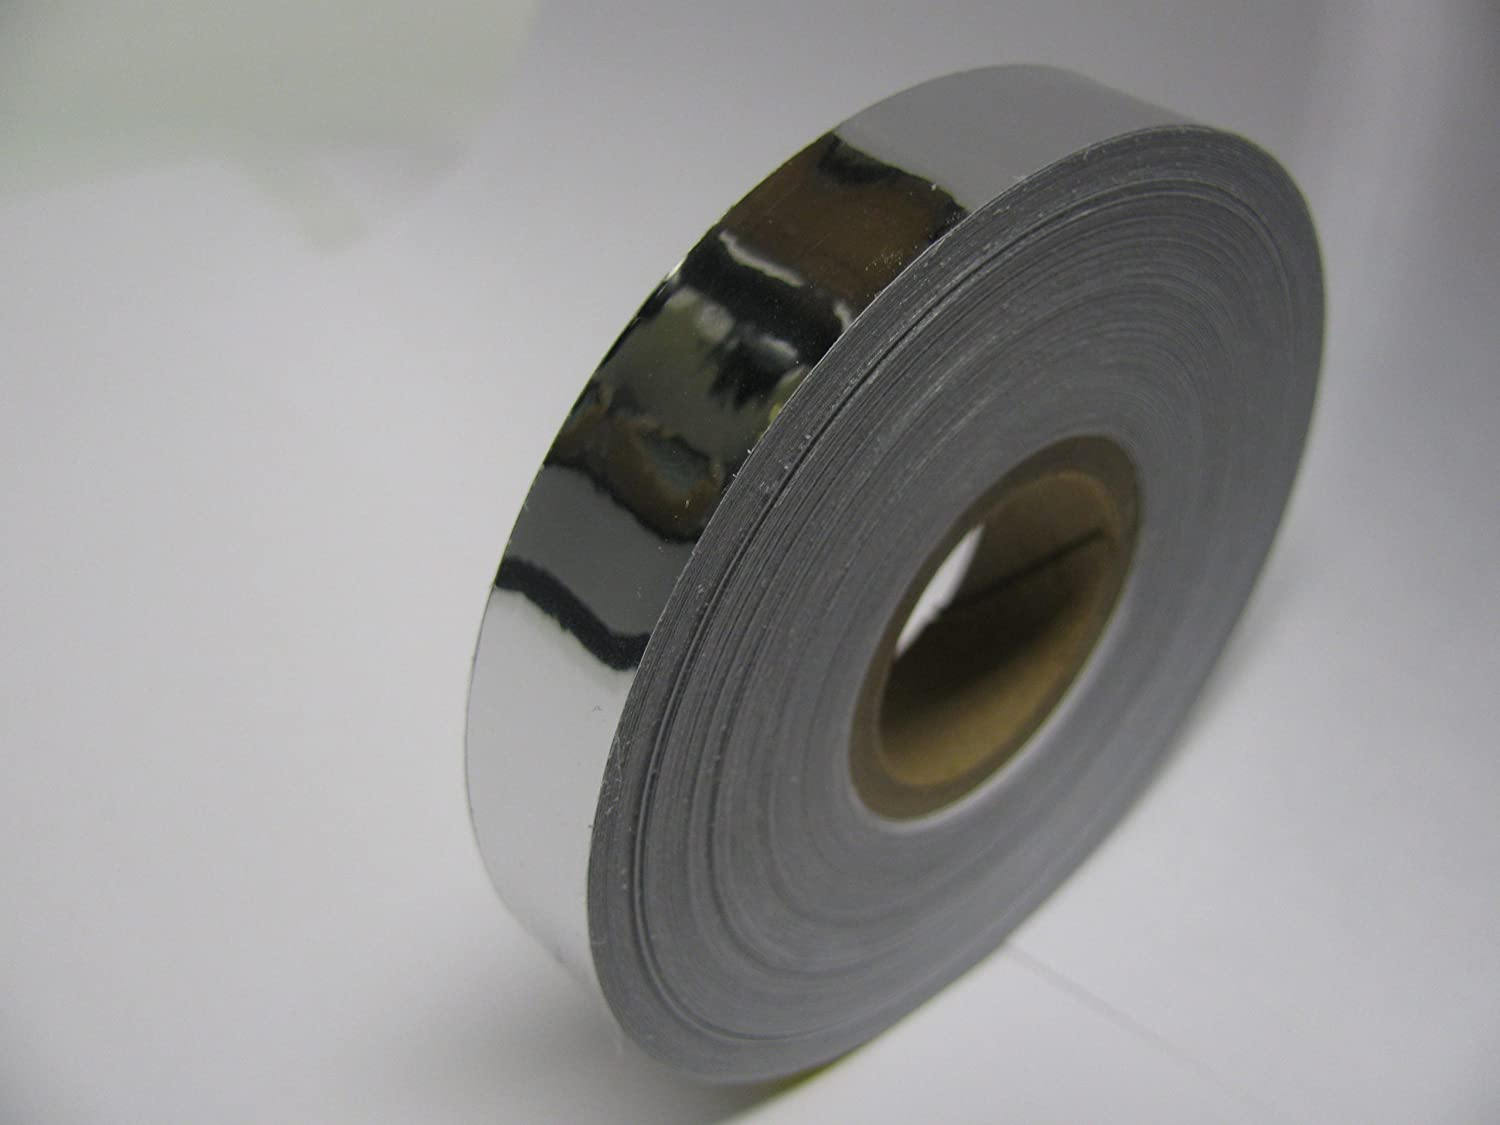 Metallic Look Silver Chrome Vinyl Tape 1 inch x 50 feet Free Shipping to World